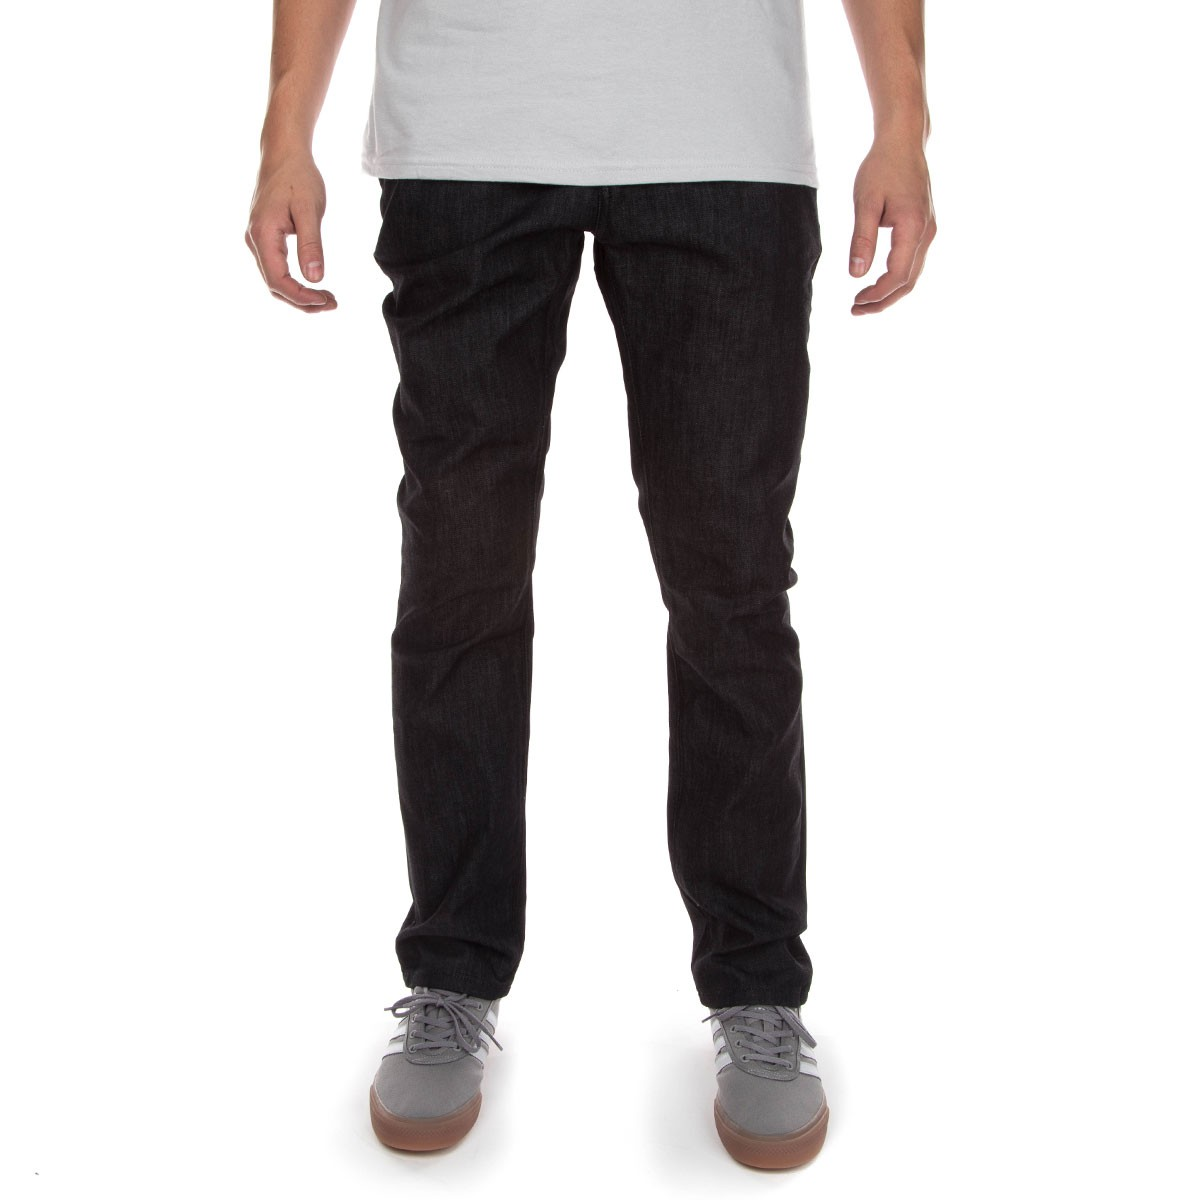 KR3W Klassic Pants - Raw Black